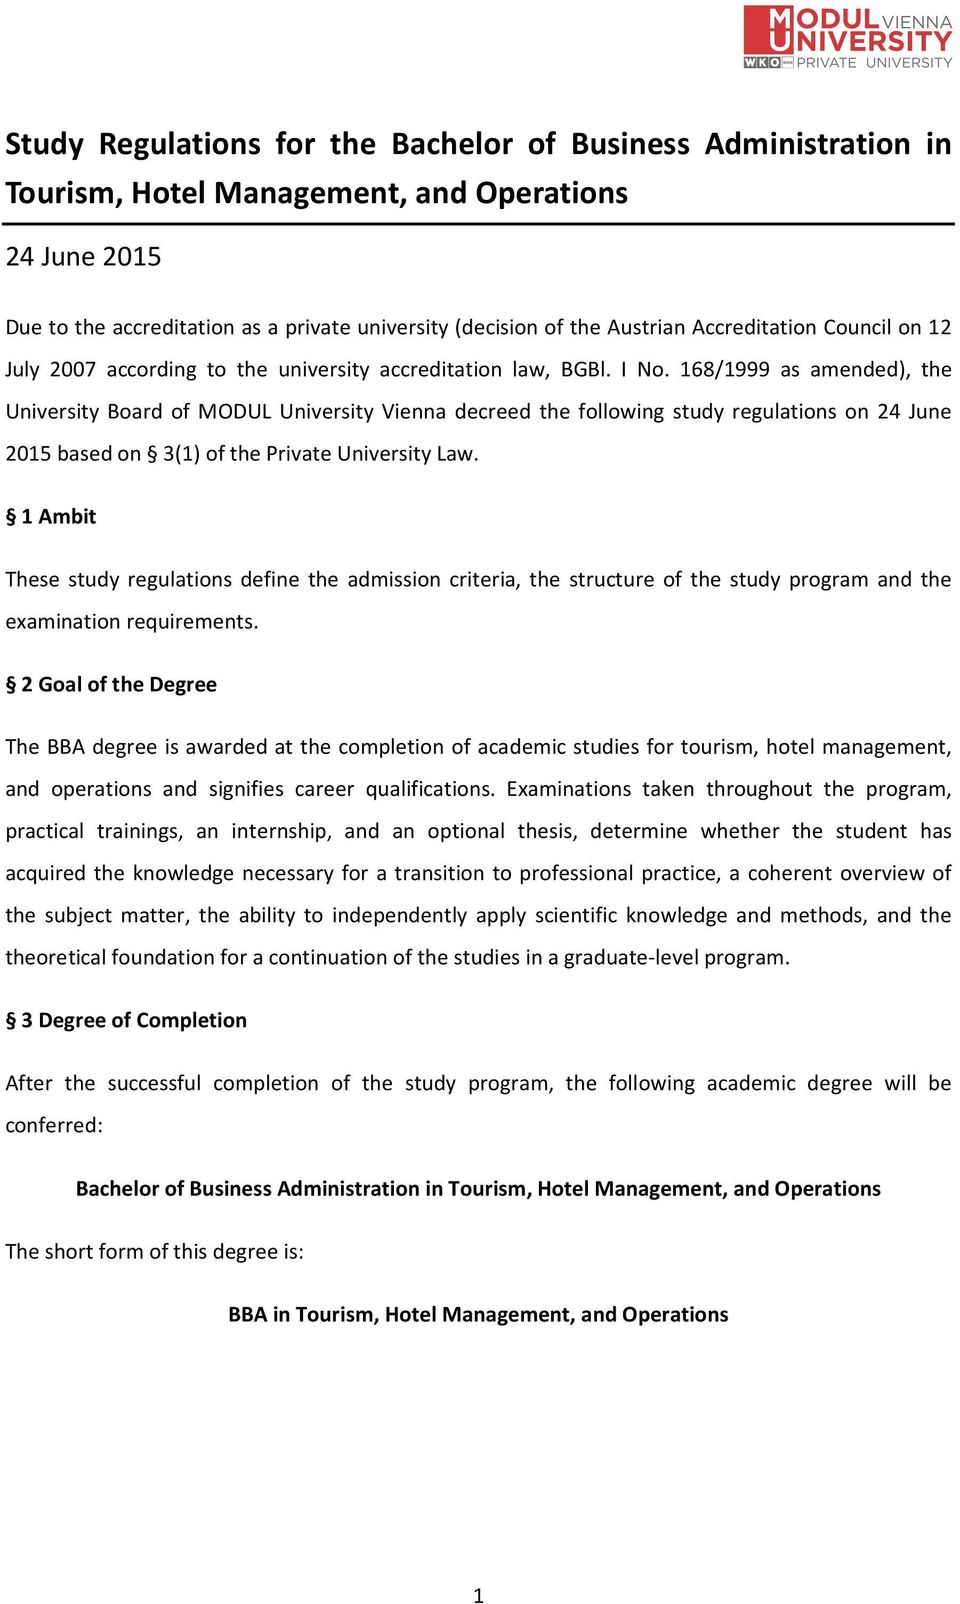 168/1999 as amended), the University Board of MODUL University Vienna decreed the following study regulations on 24 June 2015 based on 3(1) of the Private University Law.